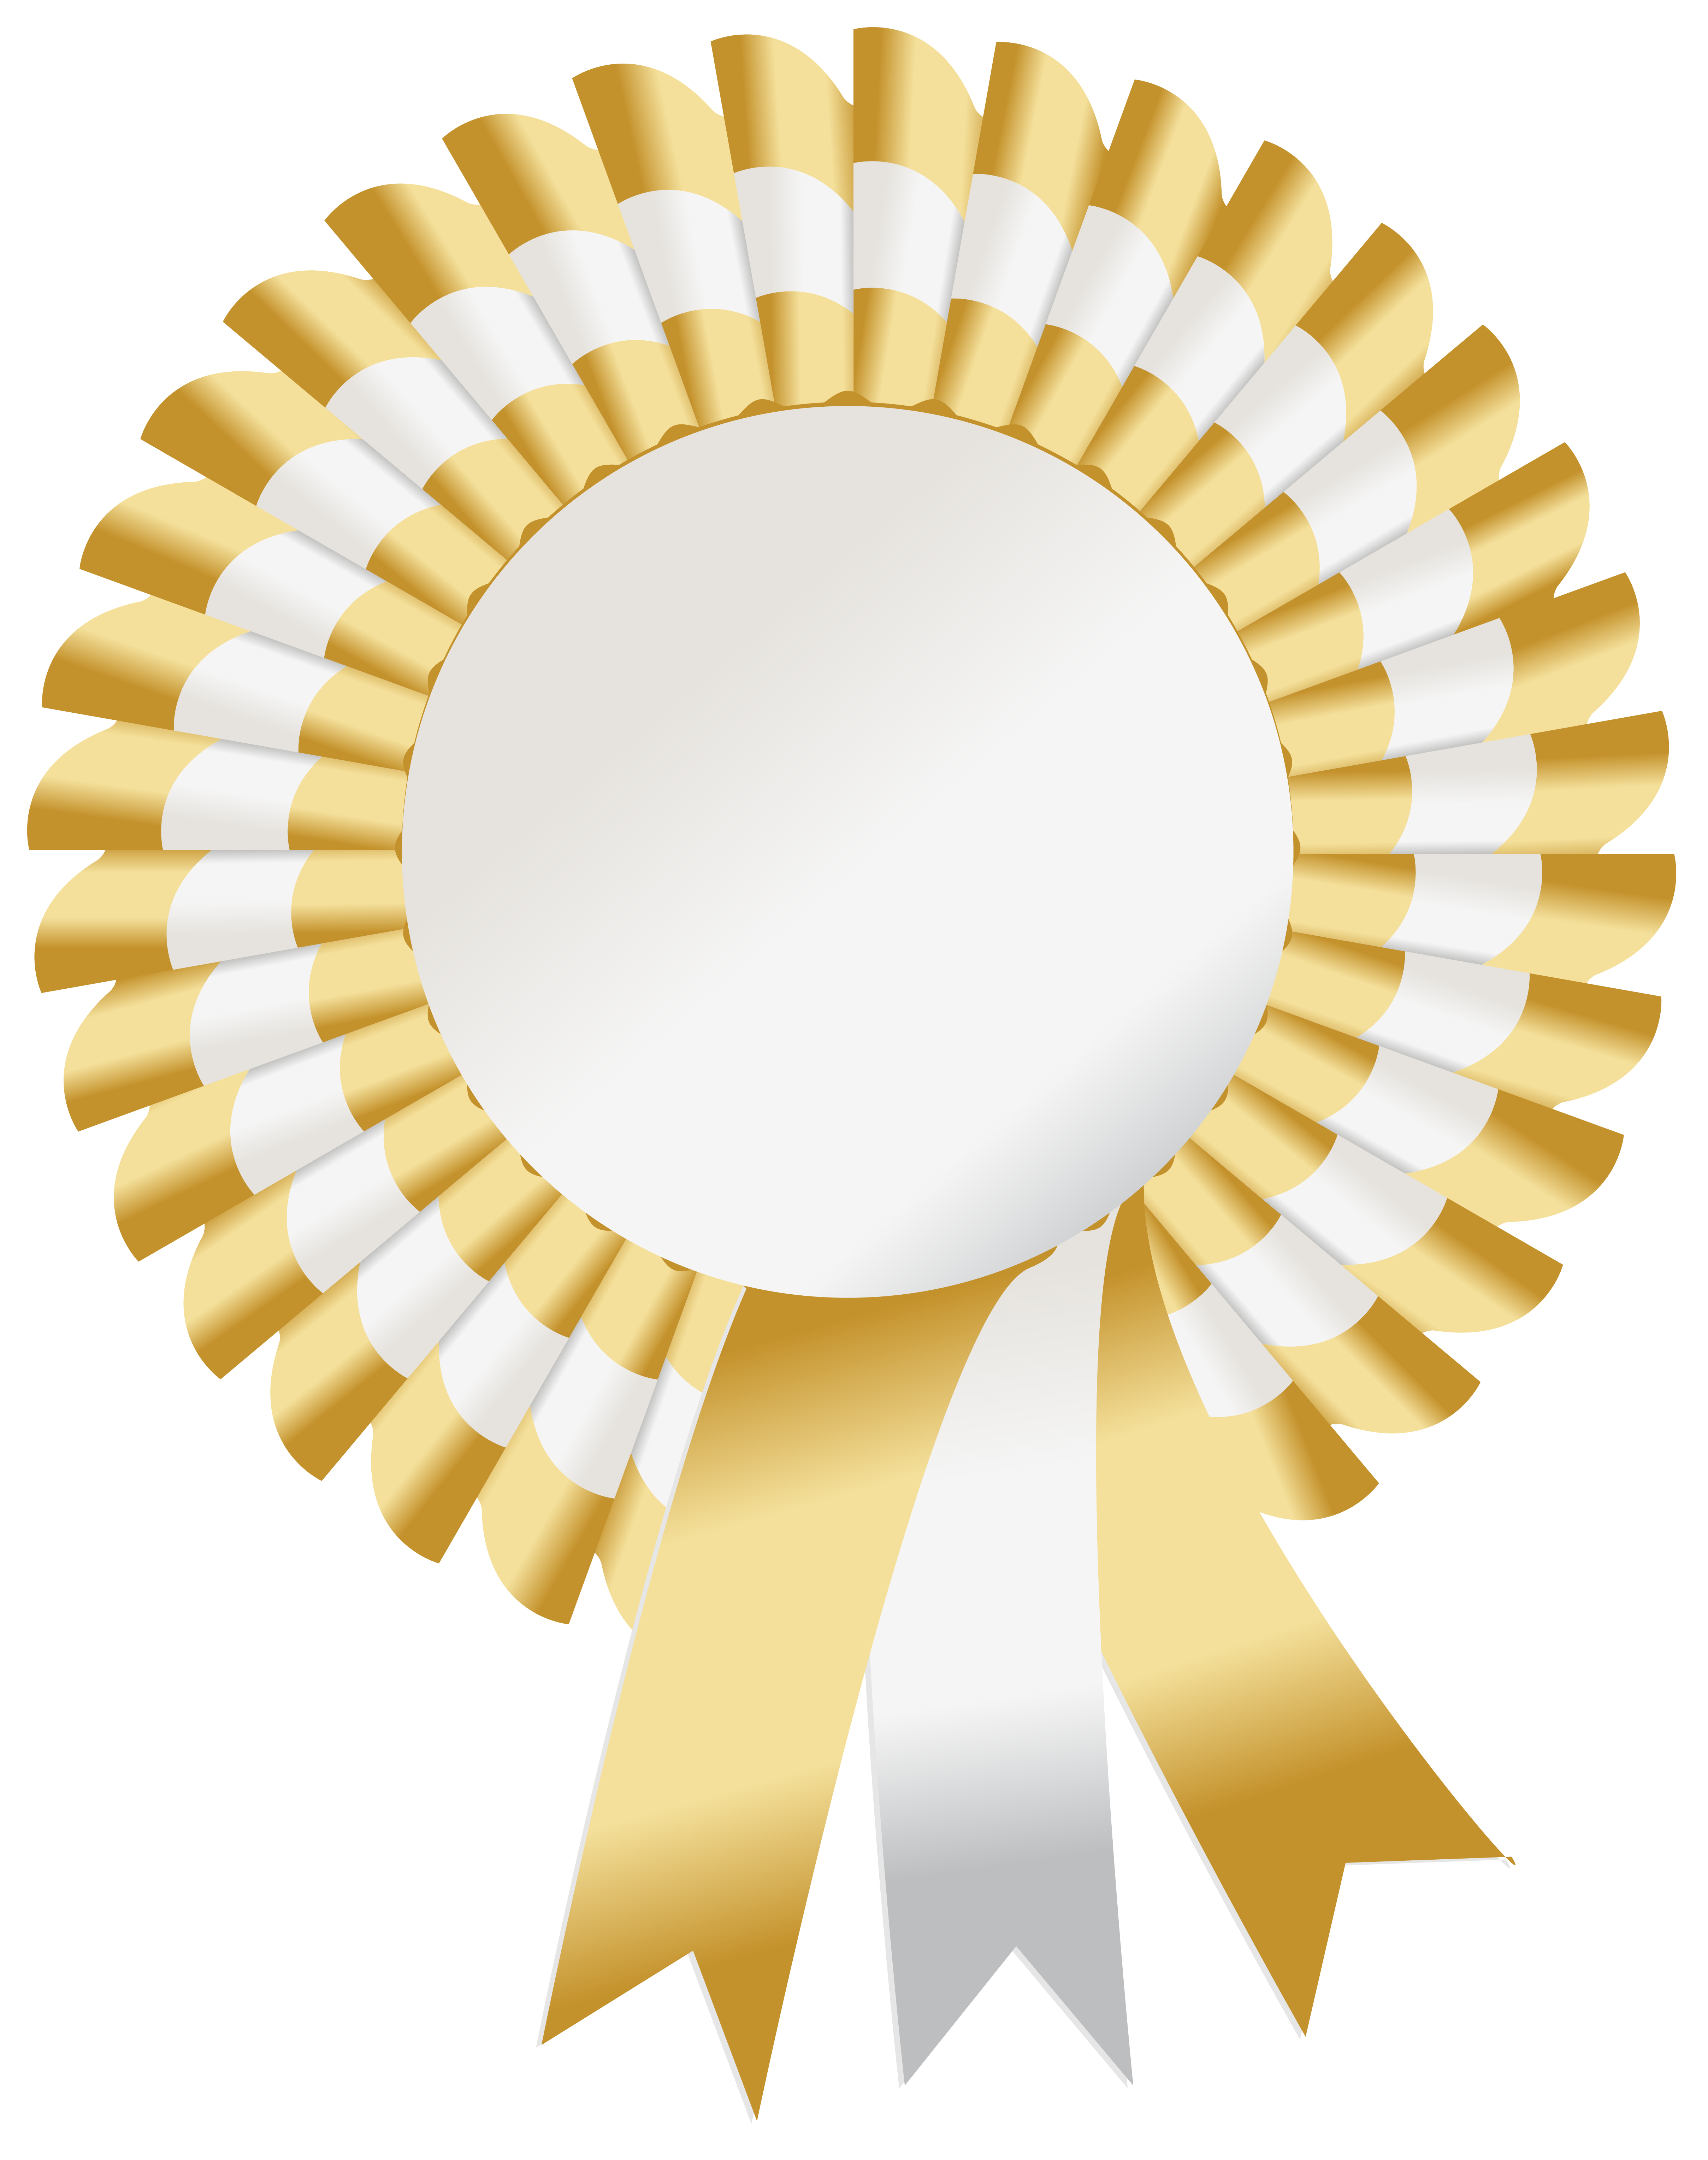 Rosette PNG Clipart Image.